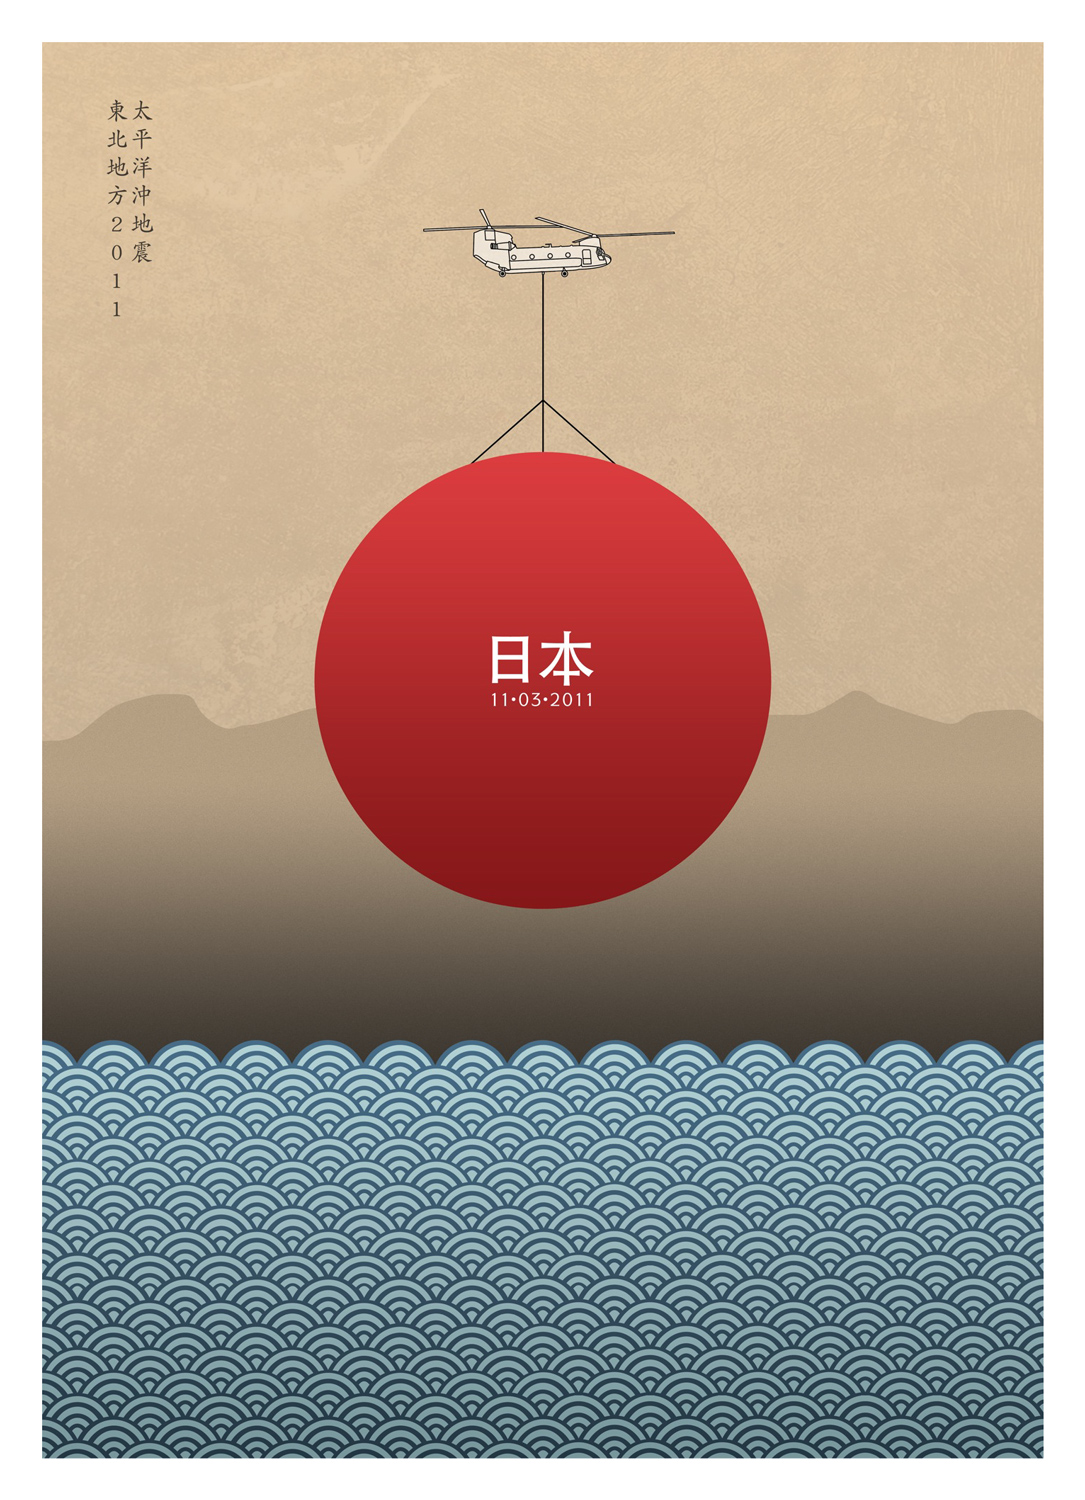 Poster design japan - More Striking Japan Relief Posters